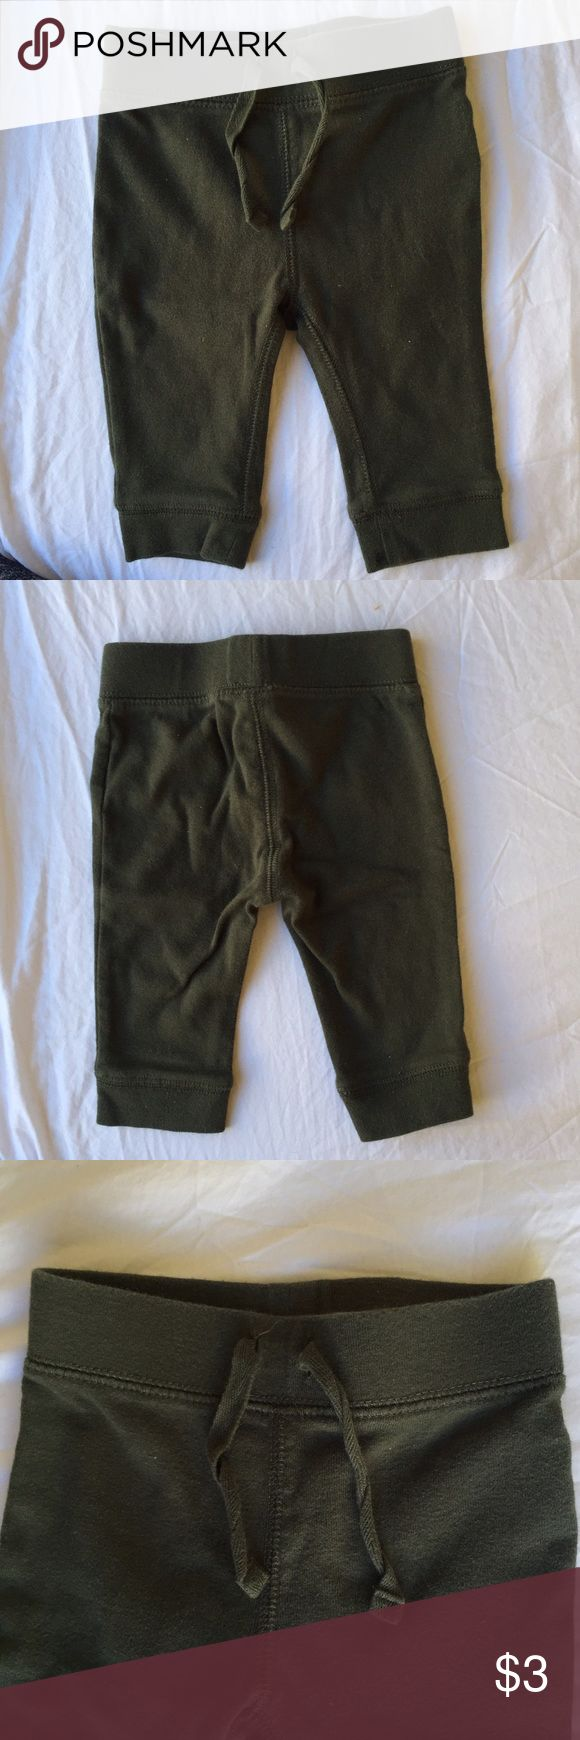 Deep Olive Green Baby Joggers These are extremely cute, I really wish my baby would still fit in these! Old Navy Bottoms Sweatpants & Joggers